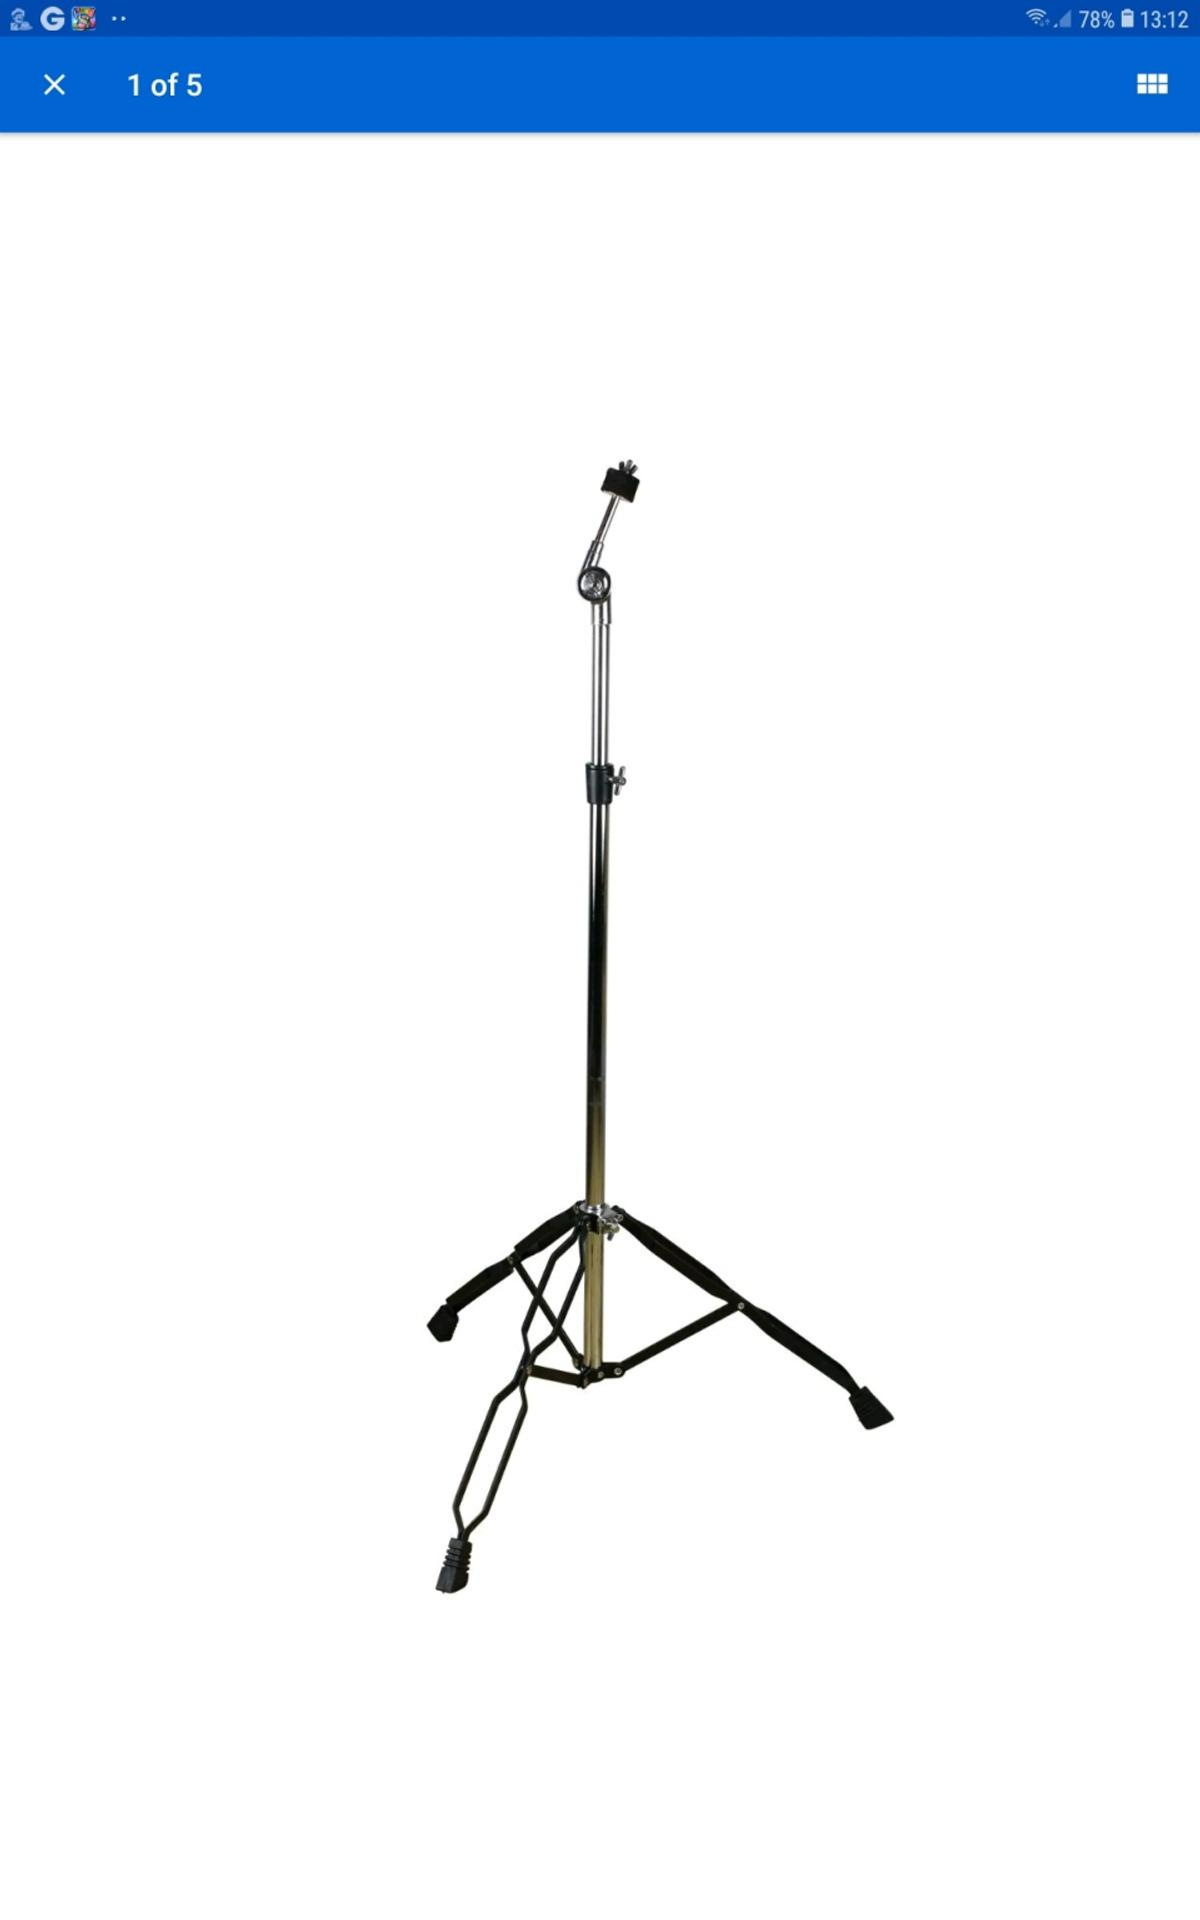 brand new cymbal stand still in box